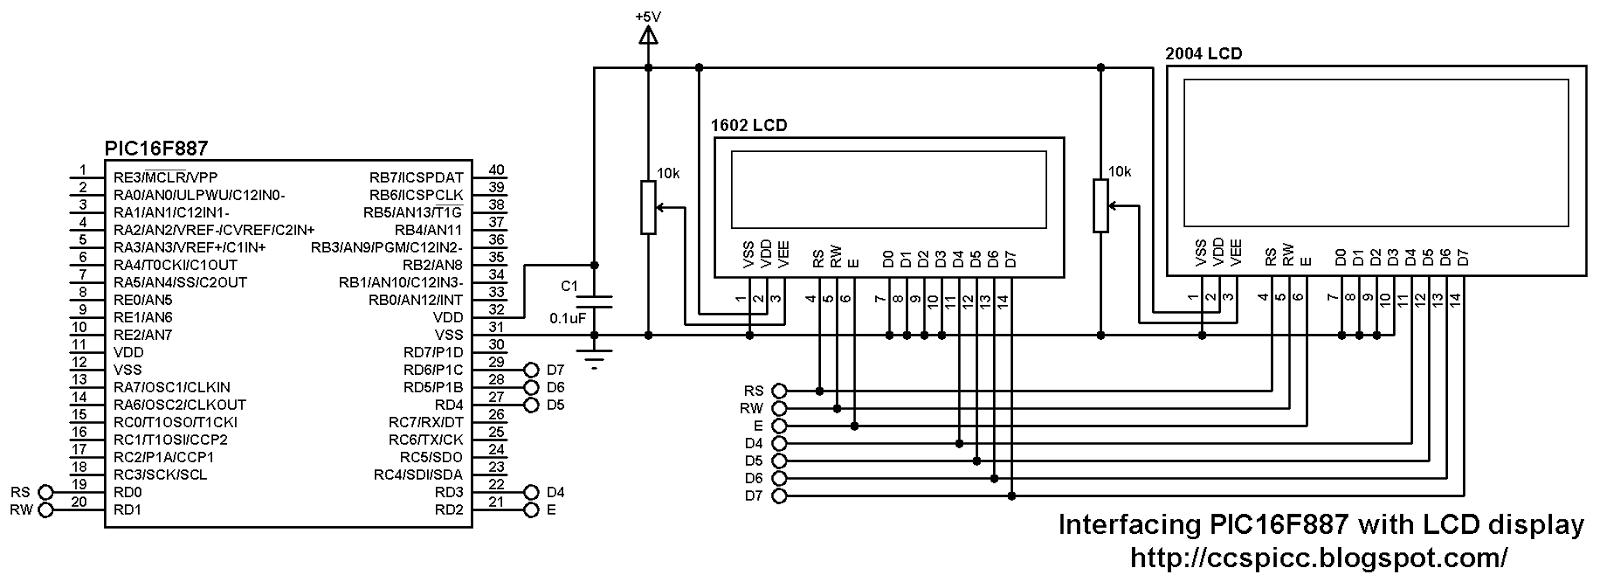 interfacing pic16f887 with lcd display